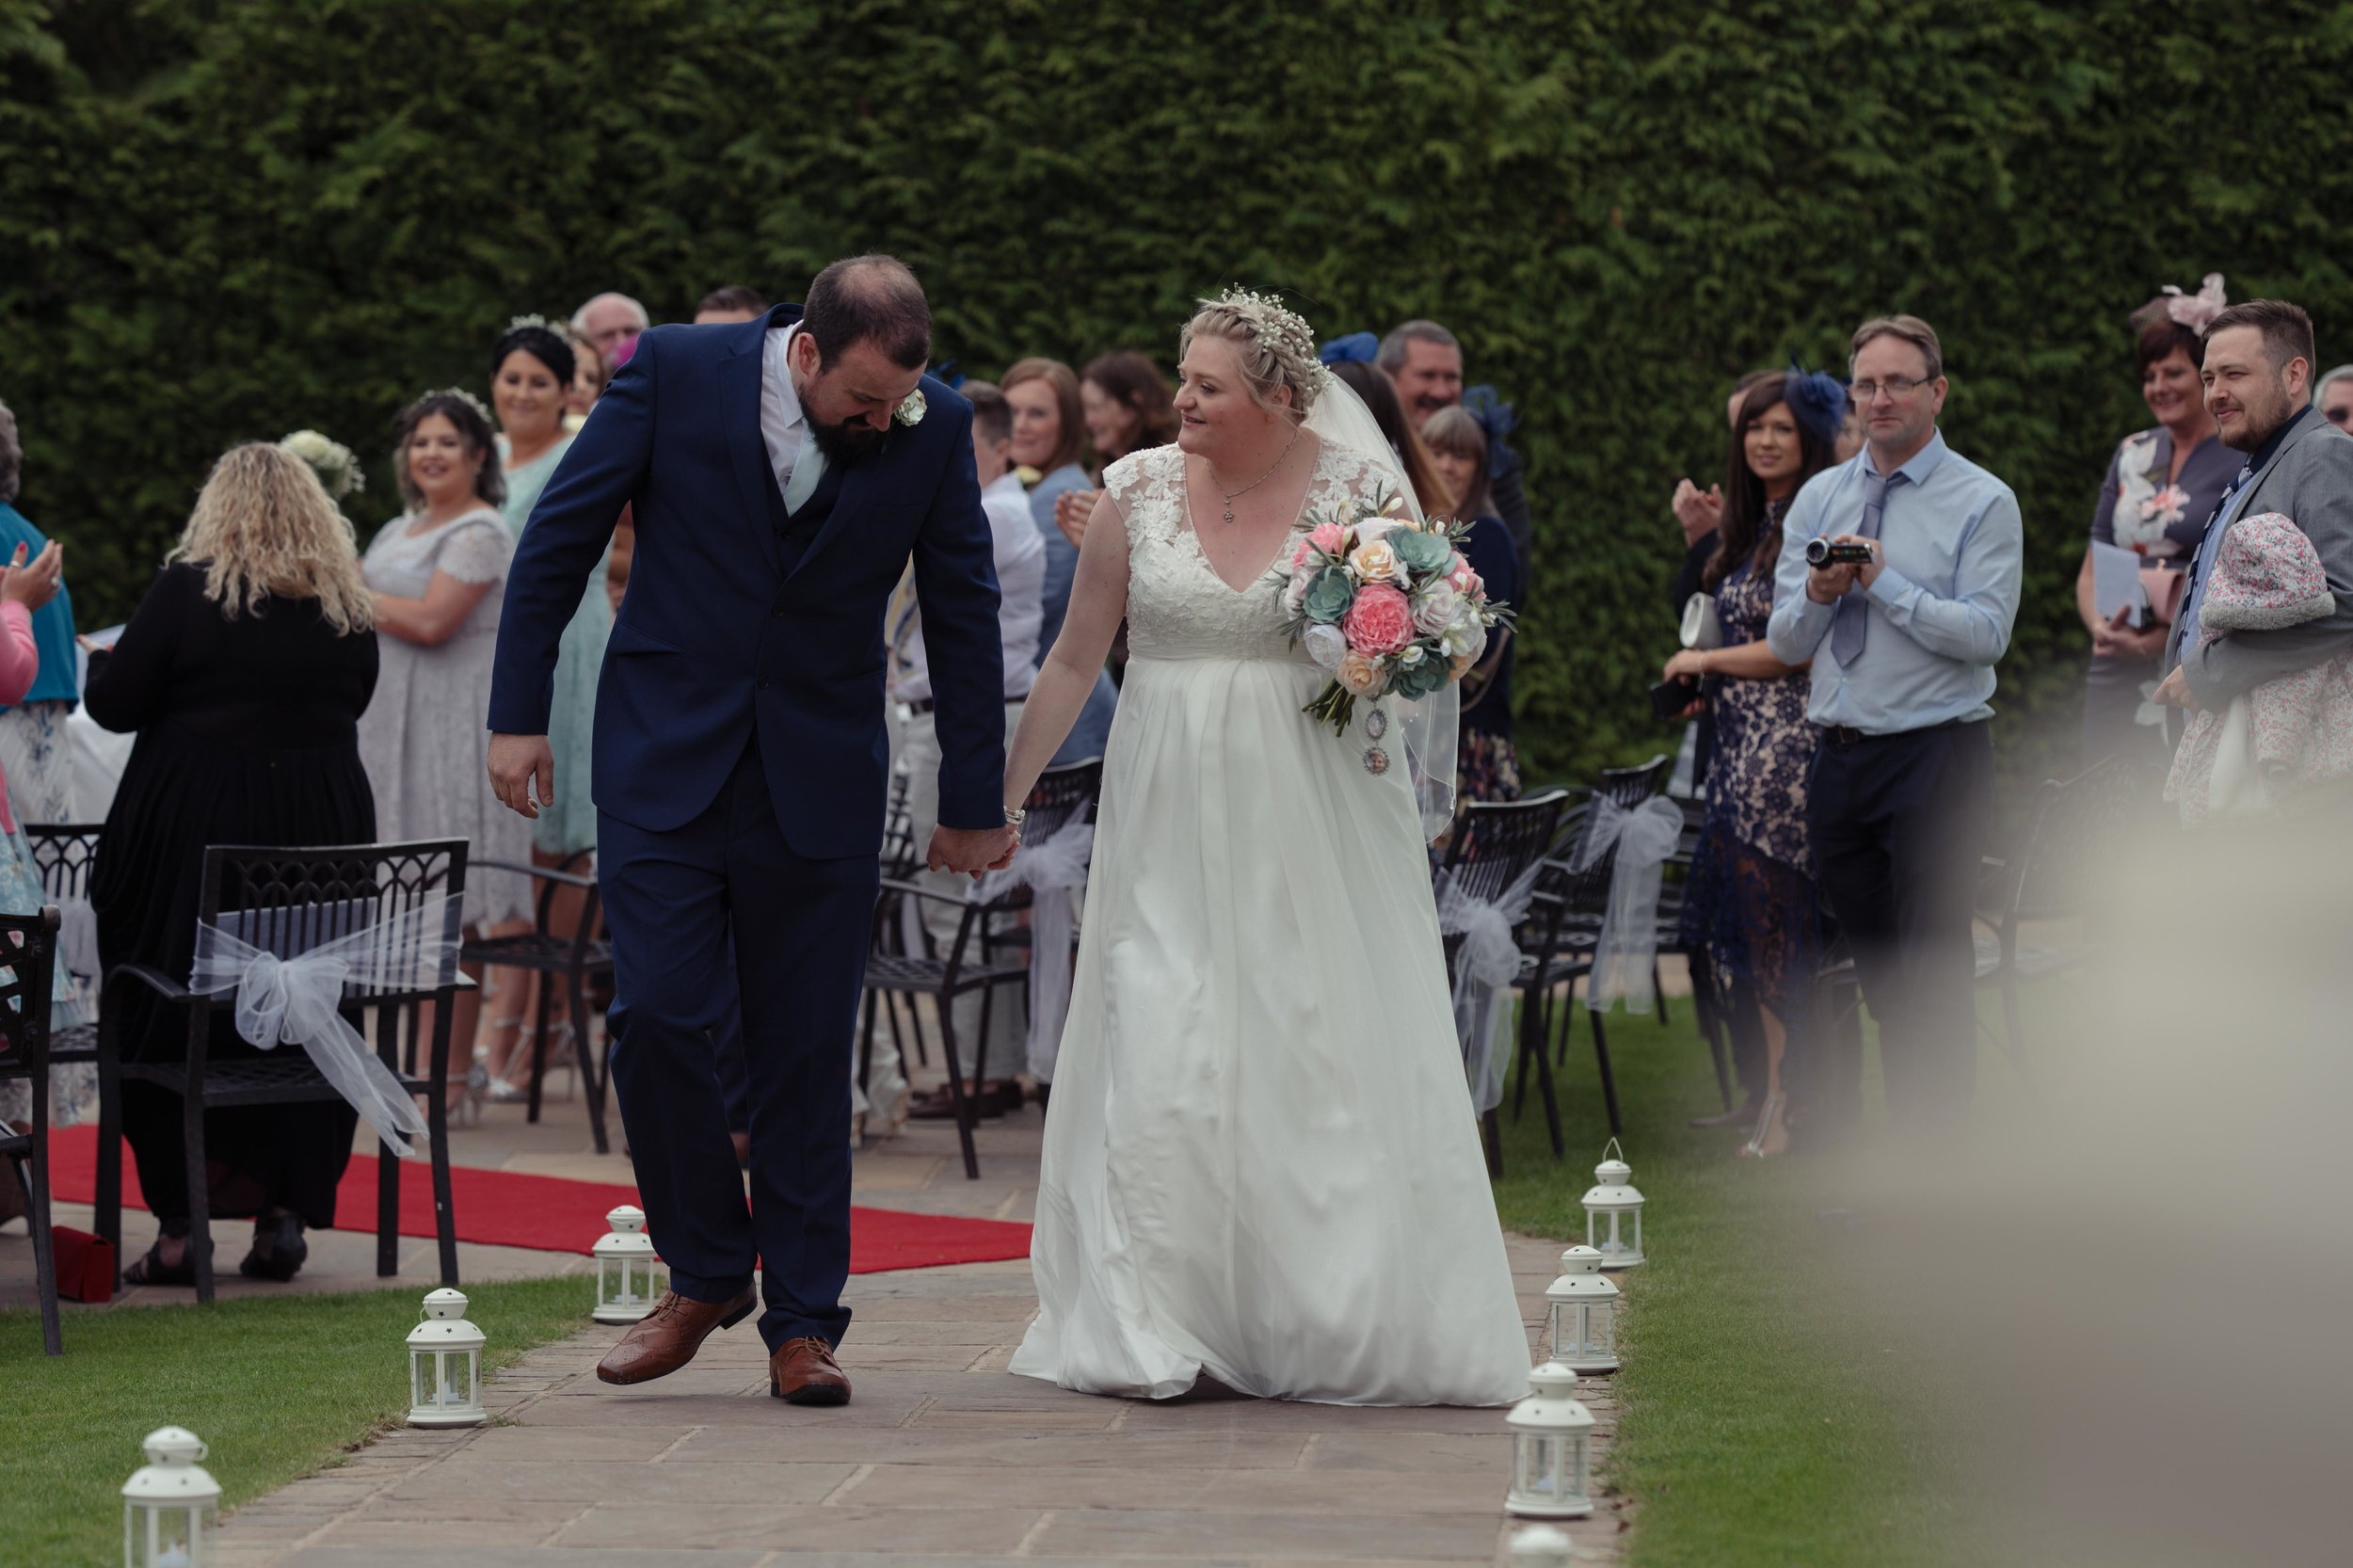 The bride and groom walk out from their wedding ceremony together